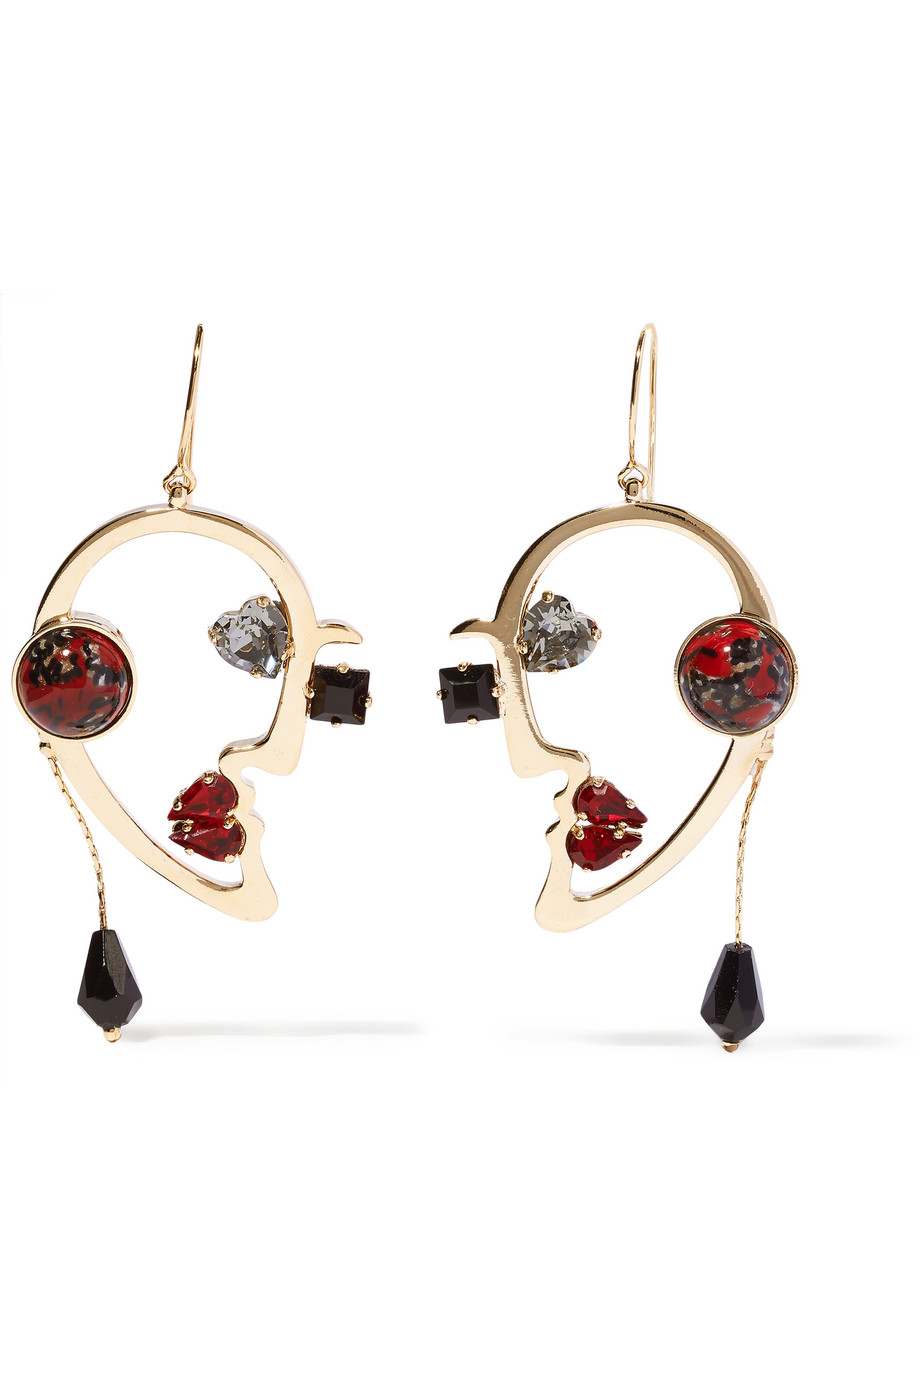 Etro Gold-Plated Multistone Earrings, Gold/Red, Women's